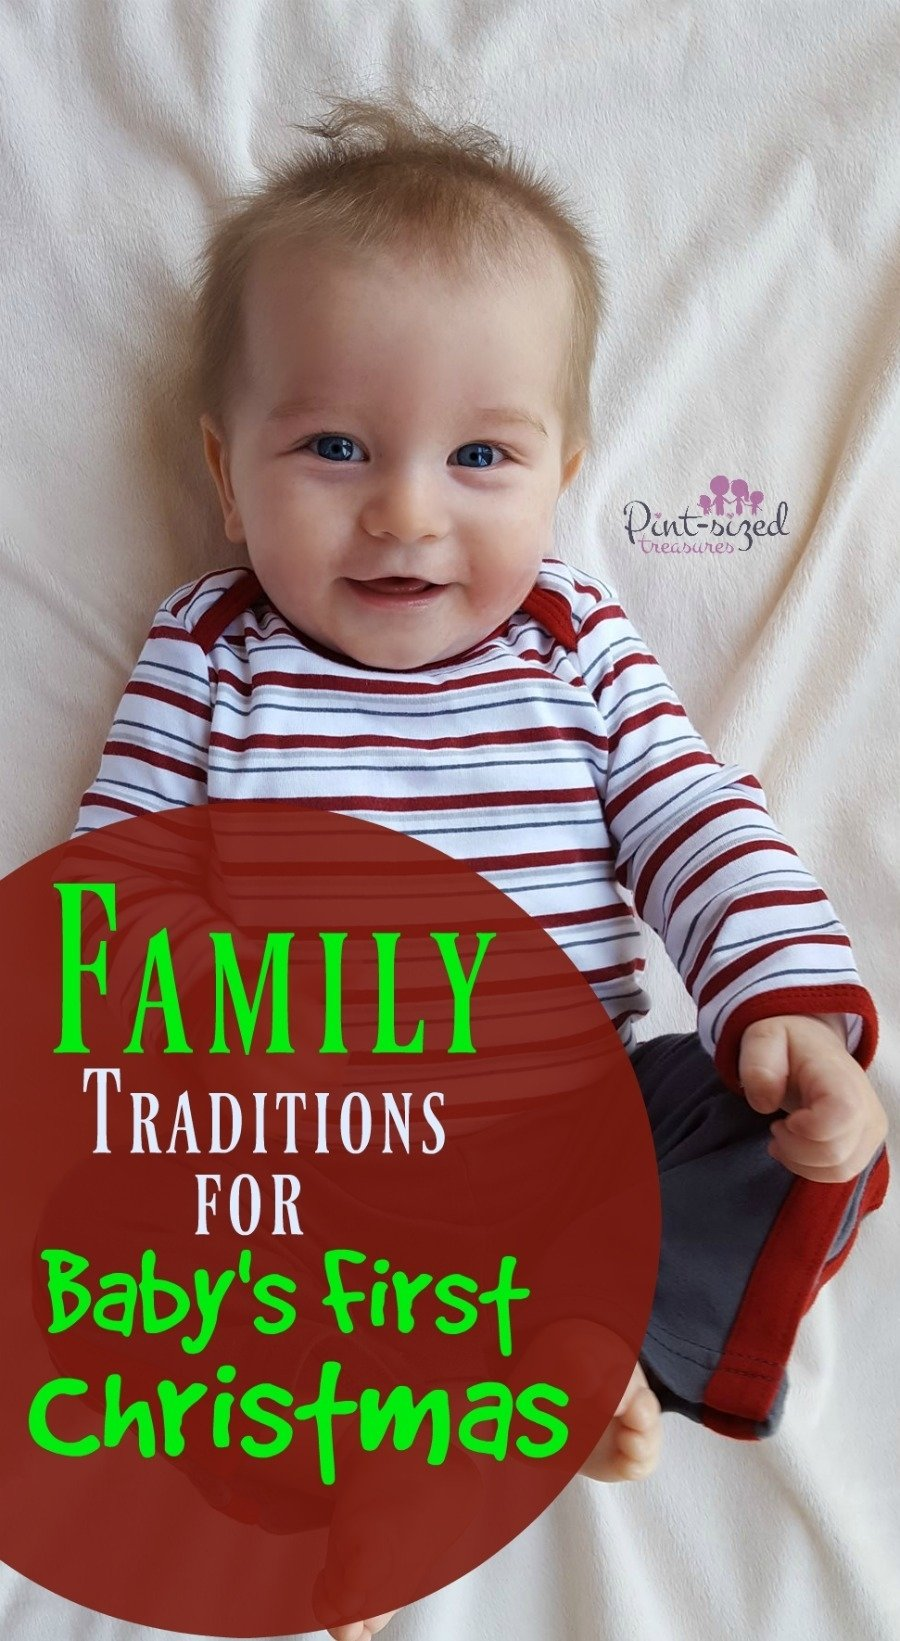 10 Trendy Family Christmas Photo Ideas With Baby family traditions for your babys first christmas c2b7 pint sized treasures 3 2020